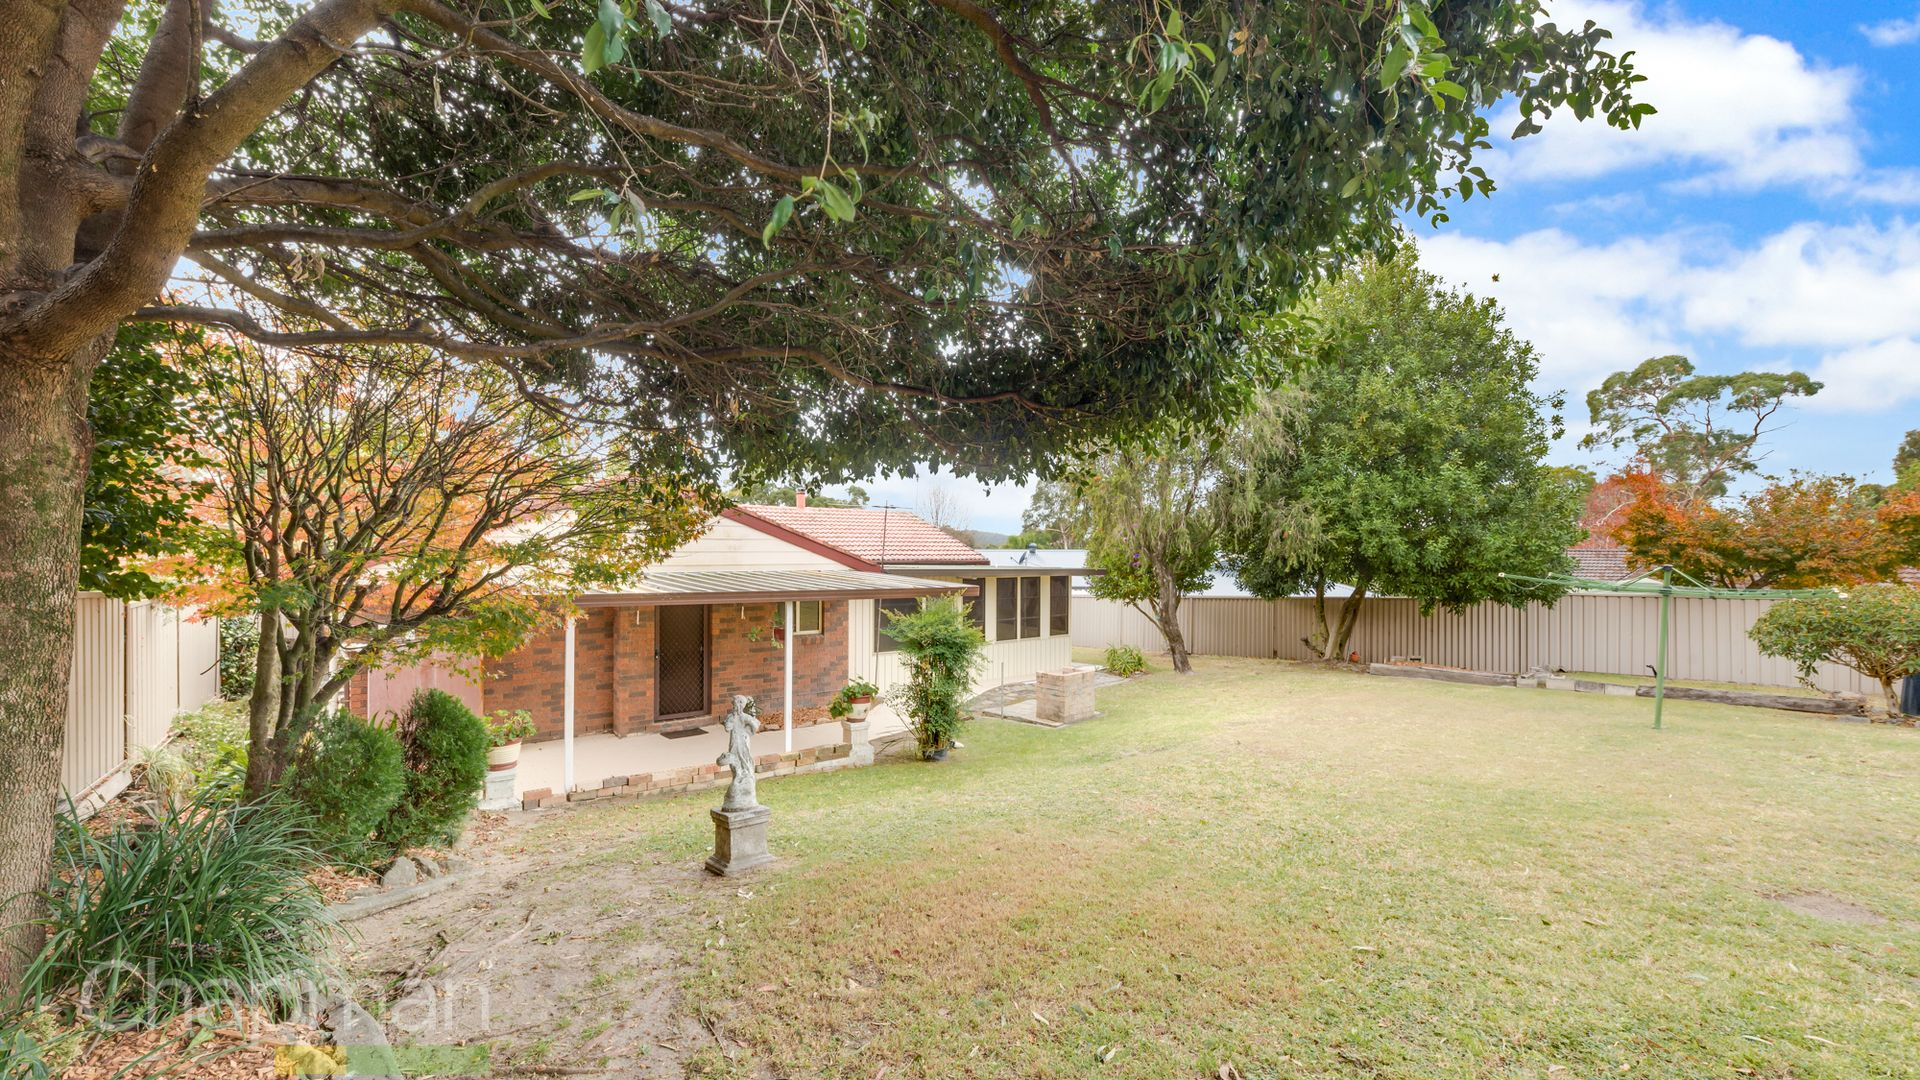 89 Lee Road, Winmalee NSW 2777, Image 1